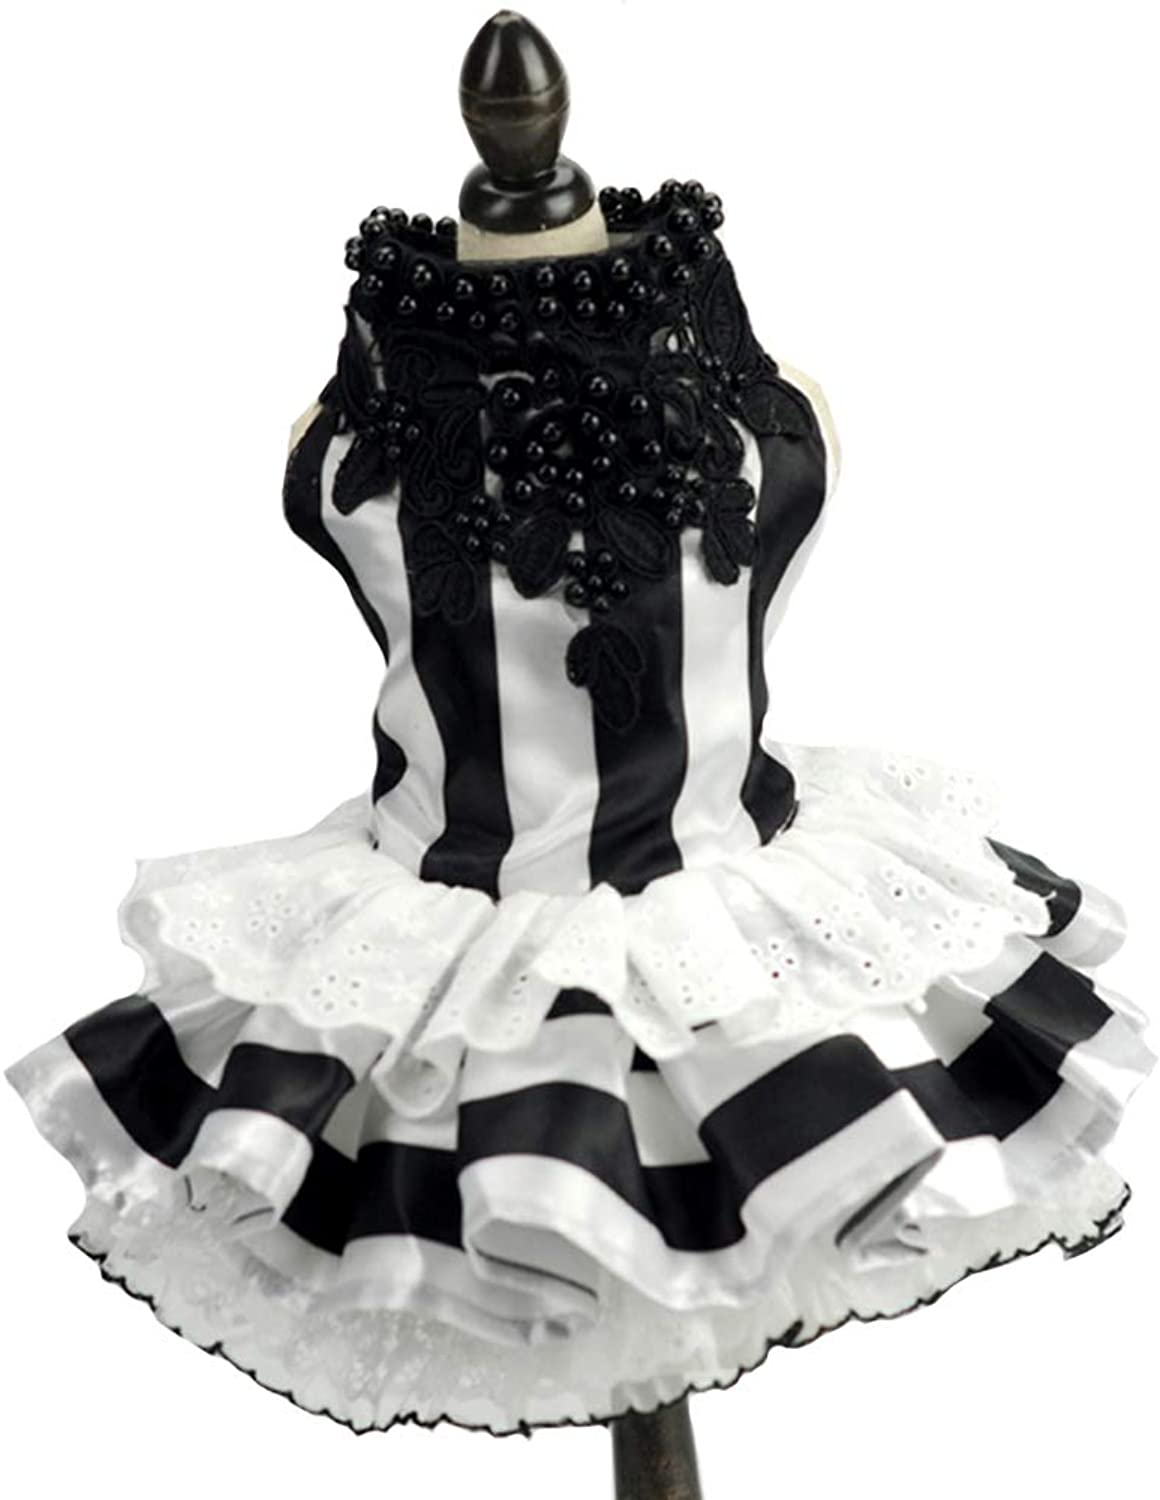 Embroidered Dog Dress Puppy Tutu Dress Black and White Stripes and Black Pearls Skirt Tutu Skirt Flower Dog Pet Cat,XL